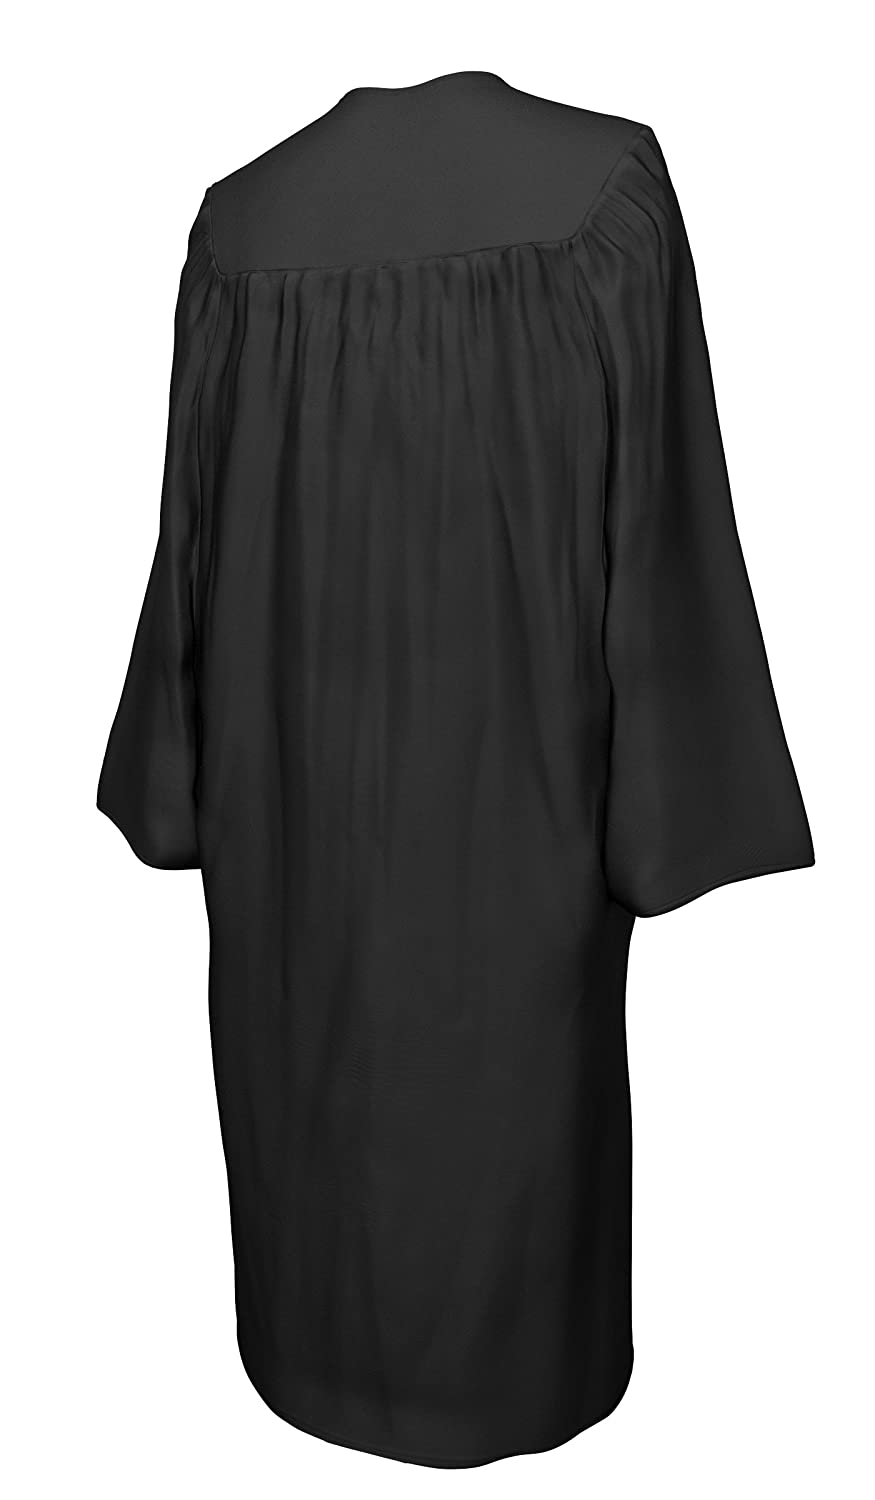 Amazon.com: College Fashion Graduation Cap Gown Tassel Year Charm ...